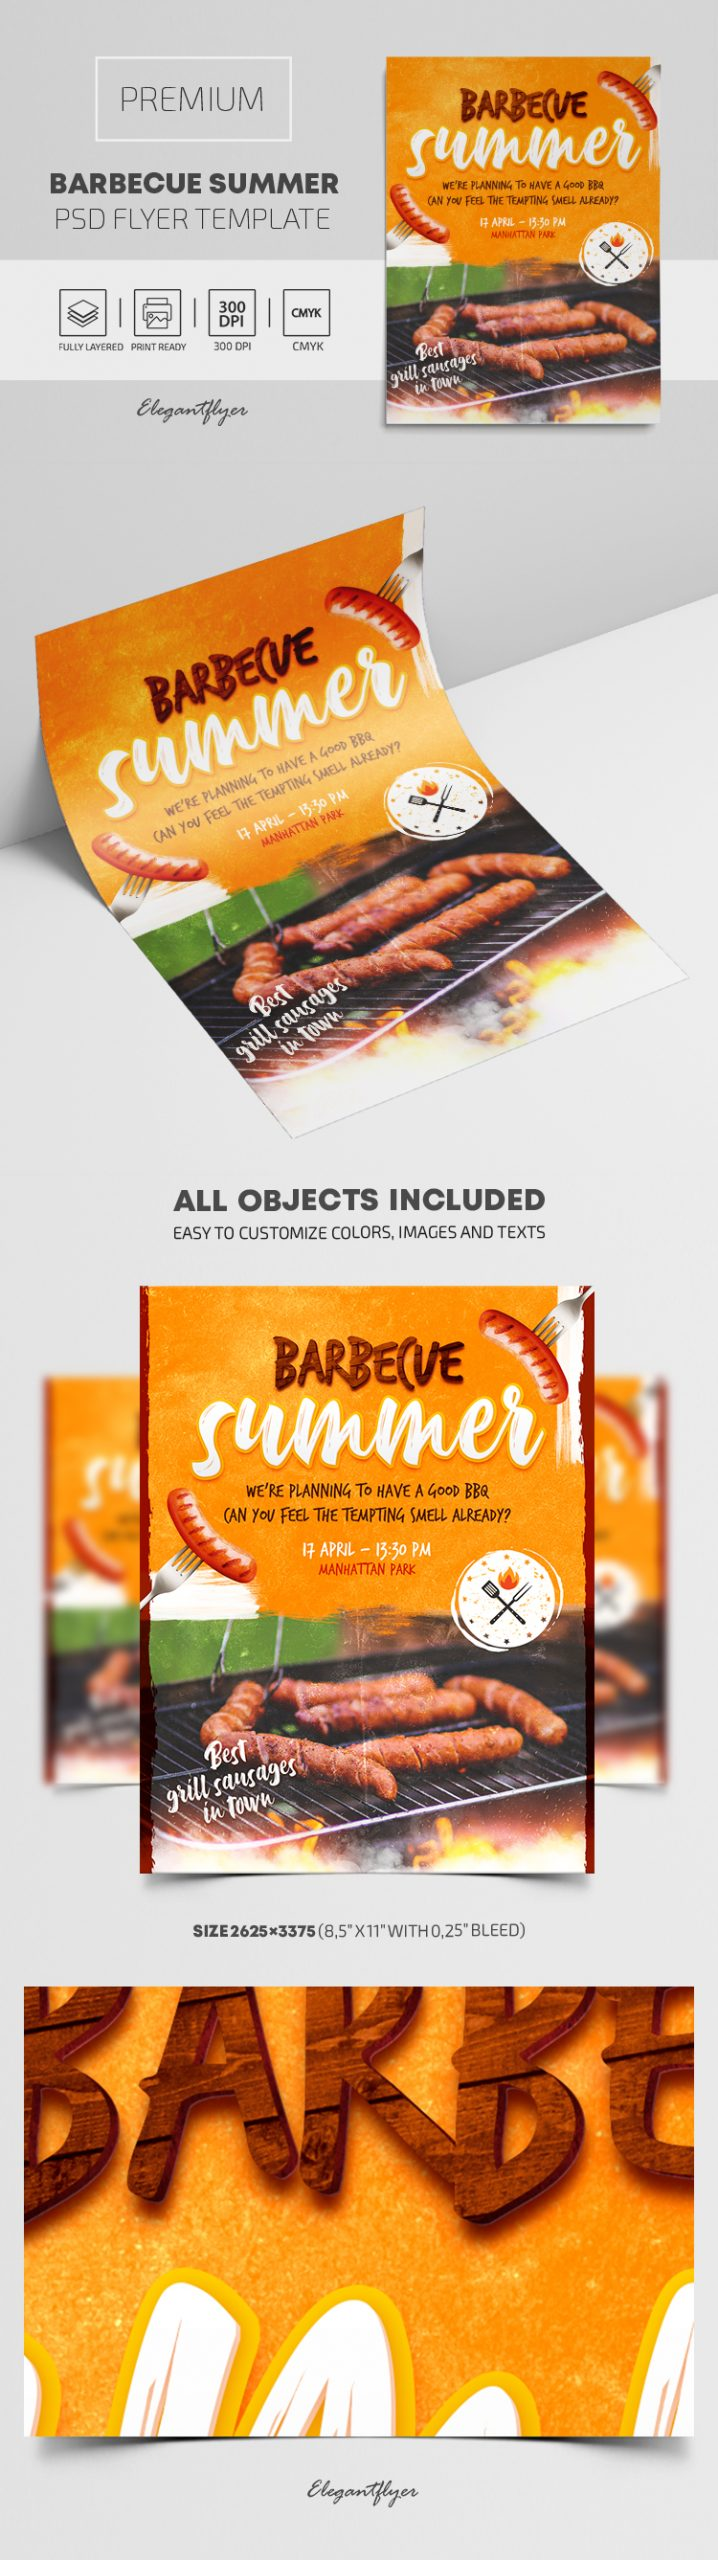 Barbecue Summer – Premium PSD Flyer Template